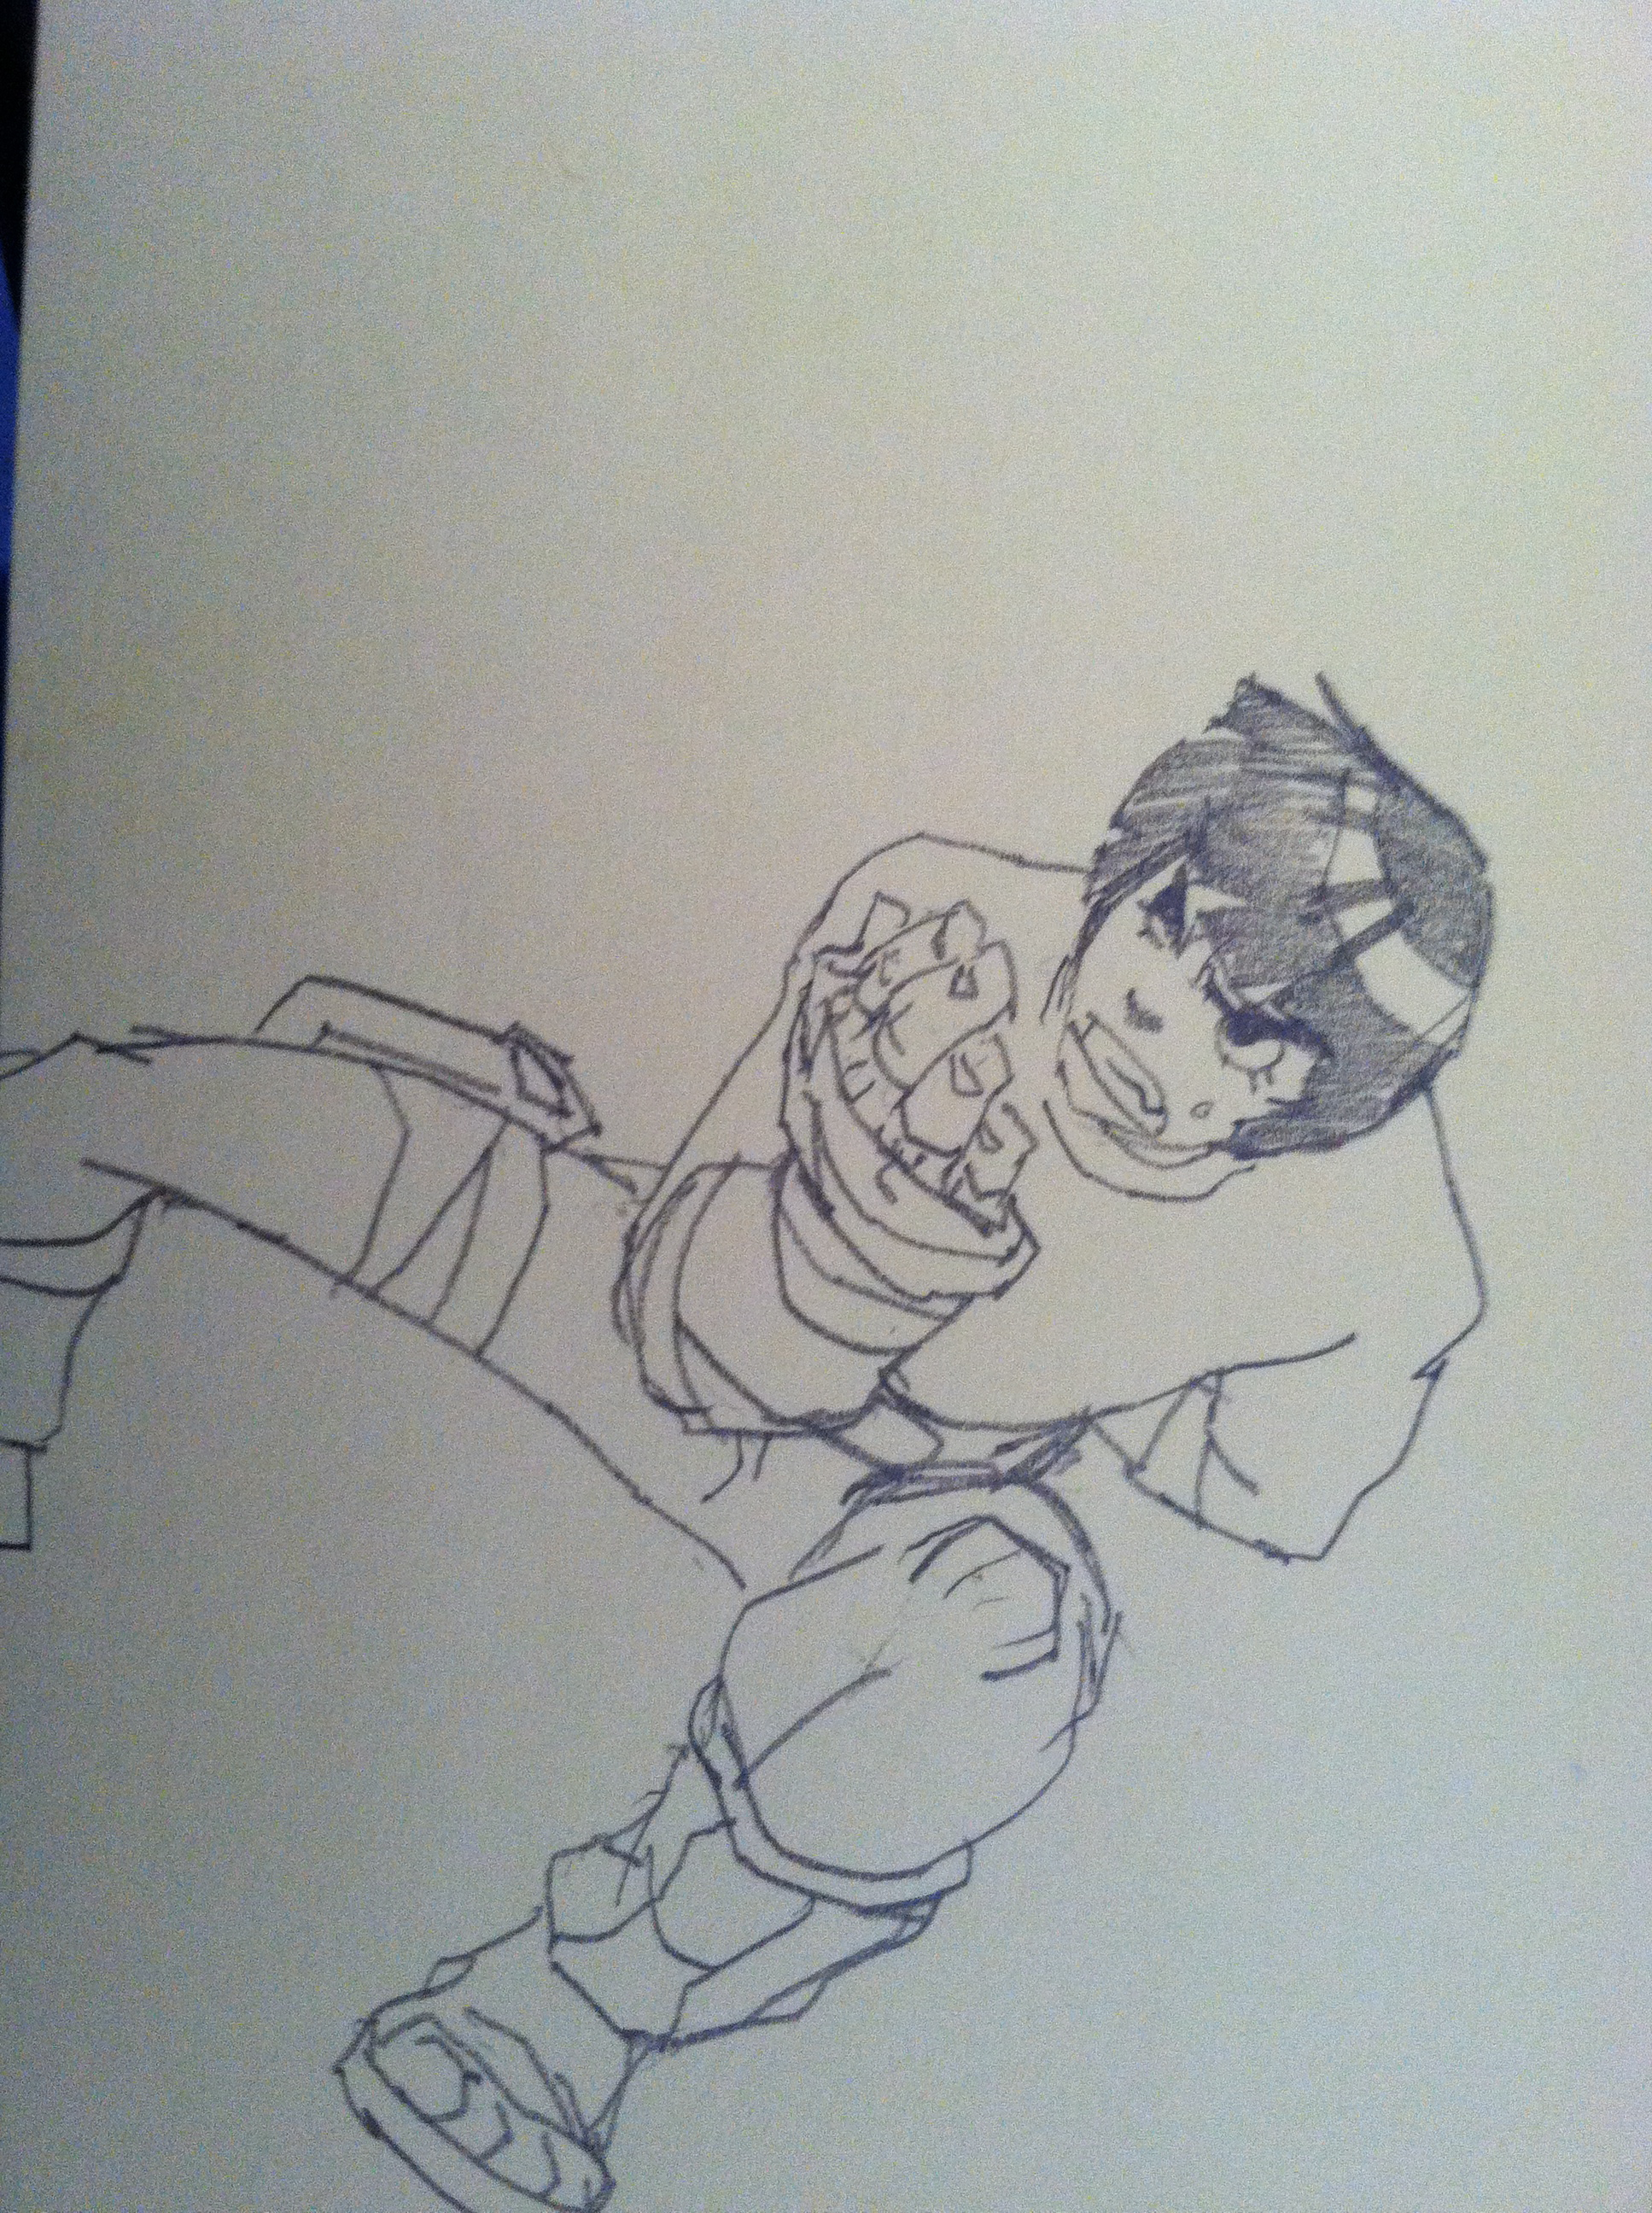 Untitled rock lee by tincan21